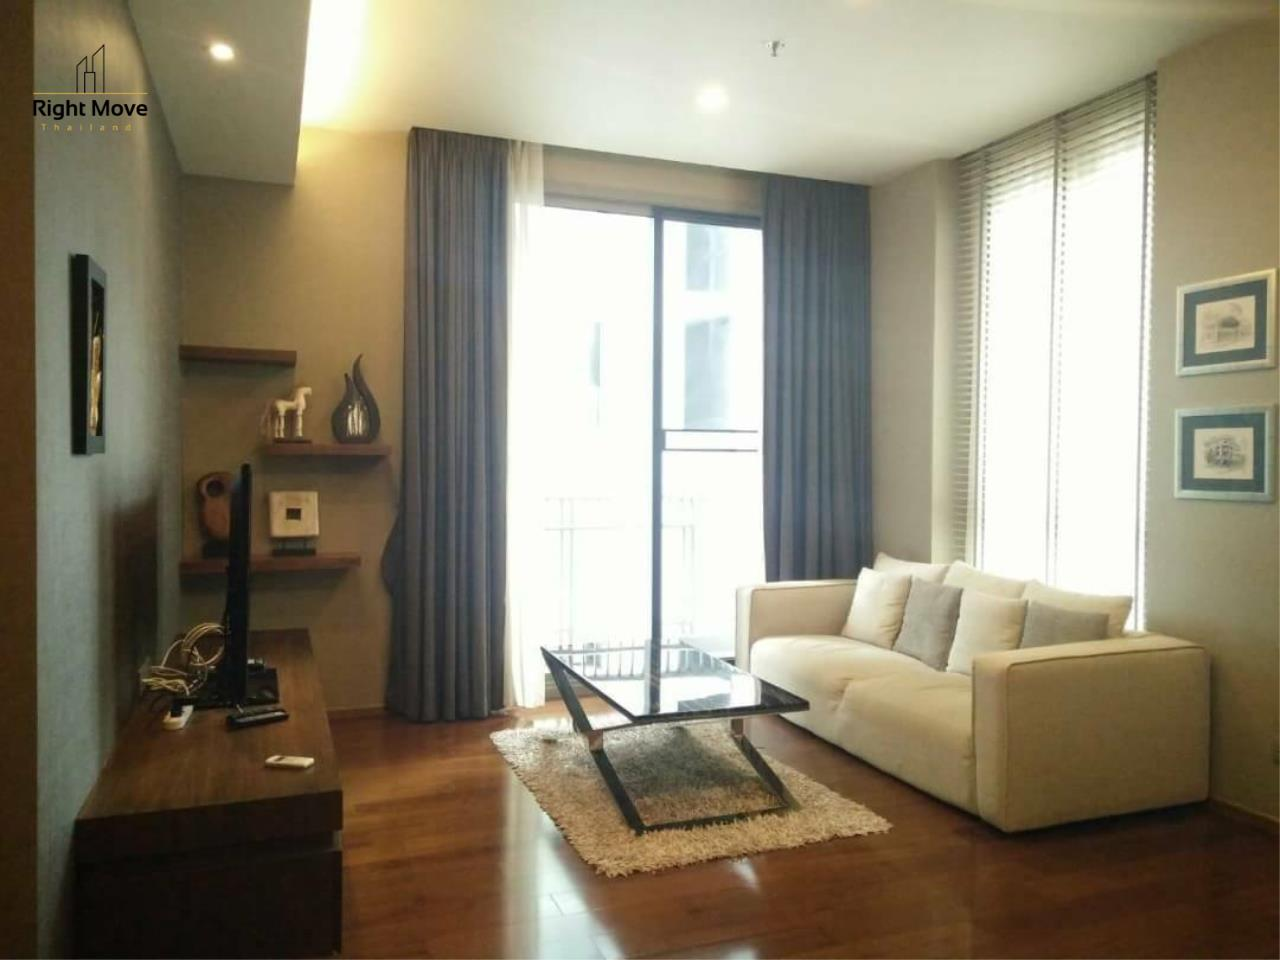 Right Move Thailand Agency's CS1270 Quattro by Sansiri For Sale - 21,300,000 THB - 2 Bedrooms - 92 Sqm  1